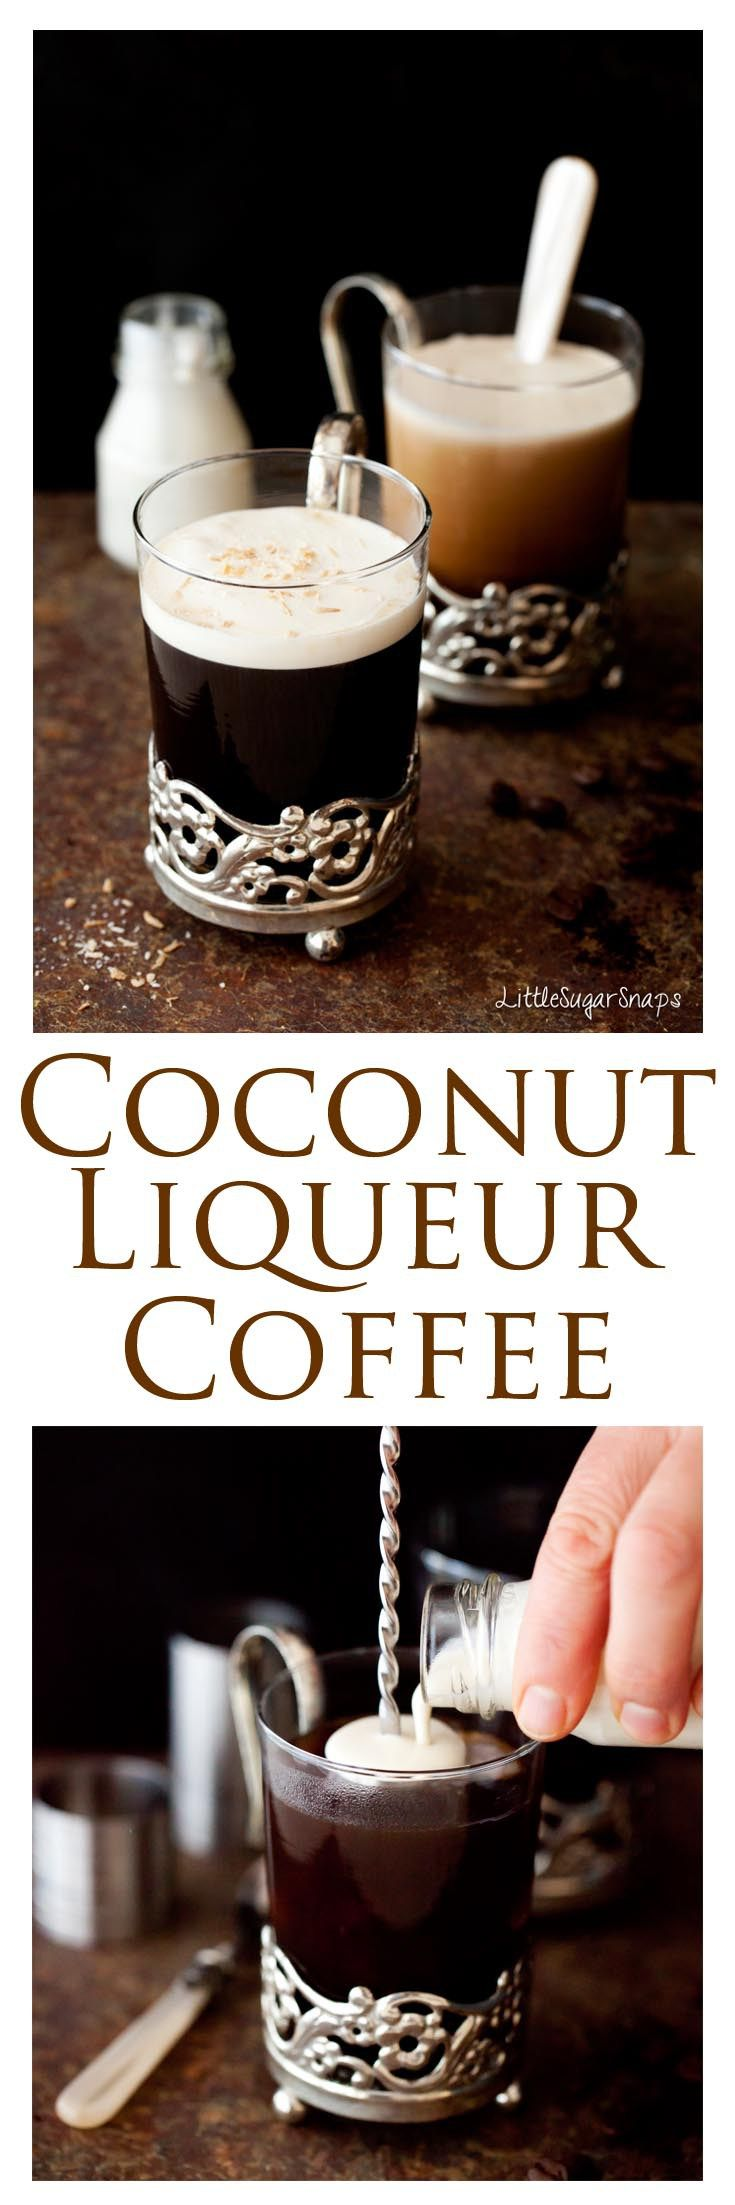 Coconut Liqueur Coffee: Coffee and coconut combine is this exotic hot drink. Fill your kitchen with intoxicating coffee aromas and snuggle up with a glass on any winters night. Quick and easy to prepare. (coconut cocktail recipes)